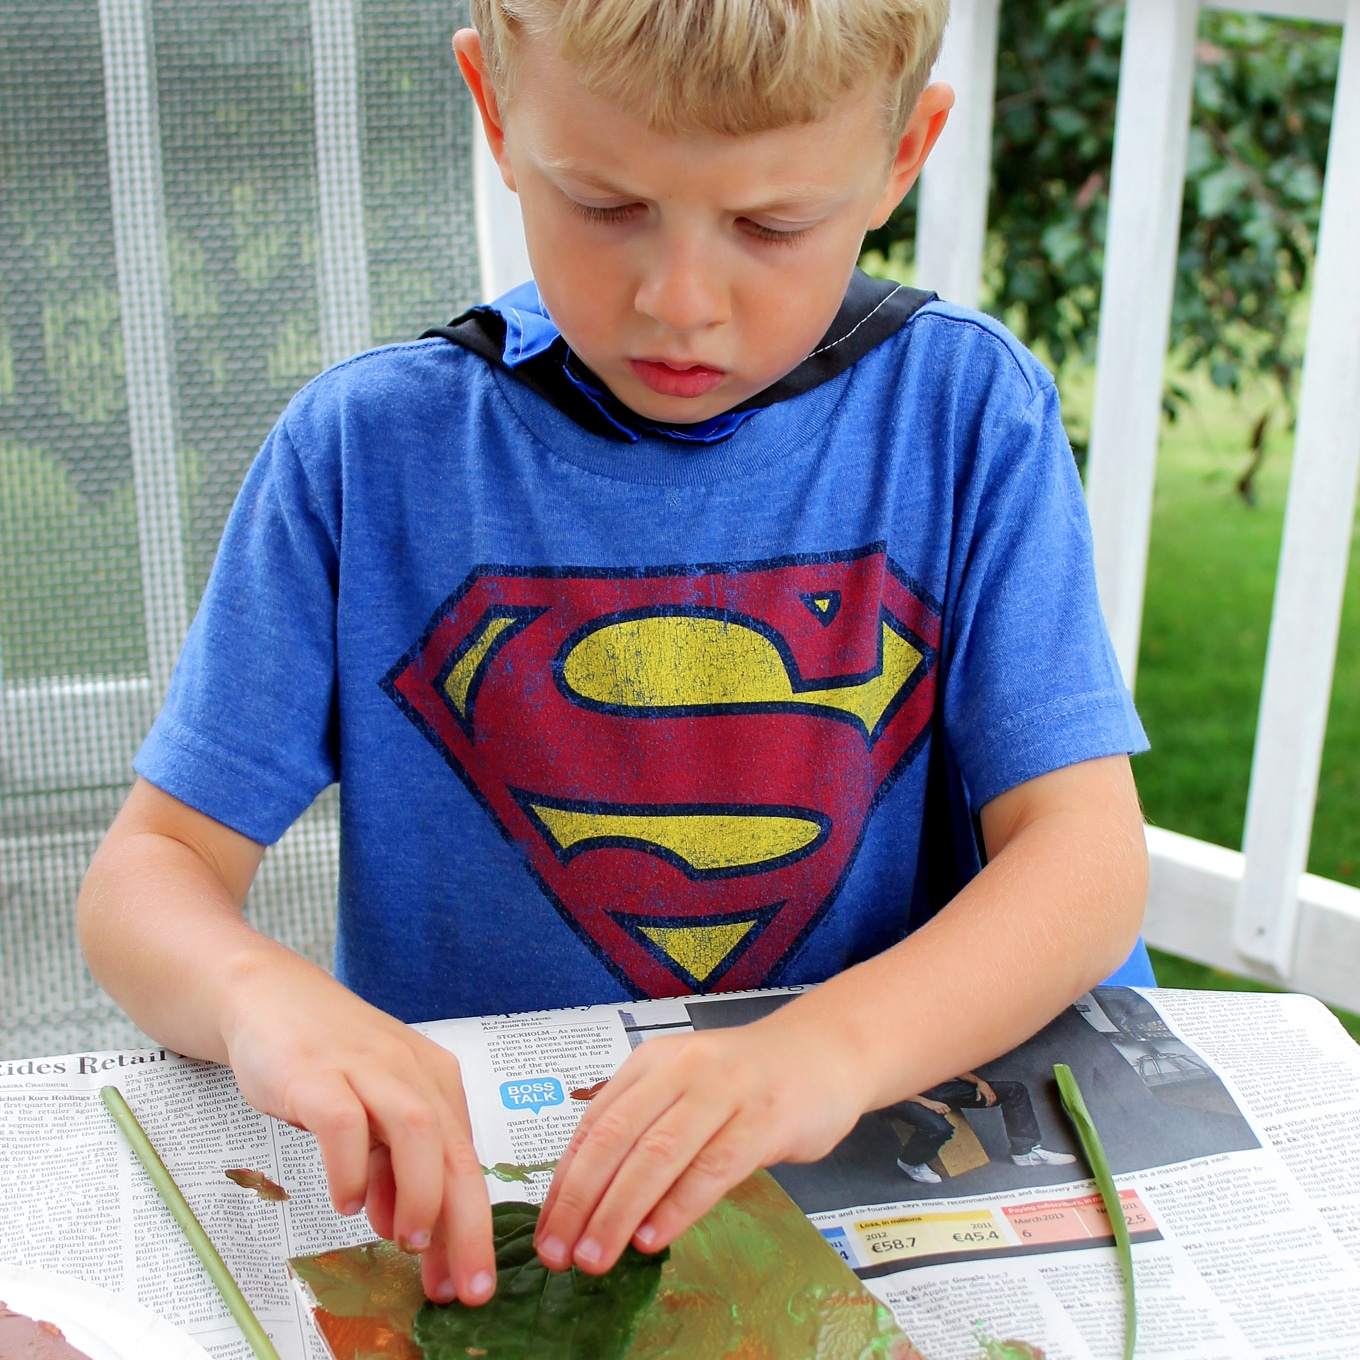 Child Painting with Natural Materials